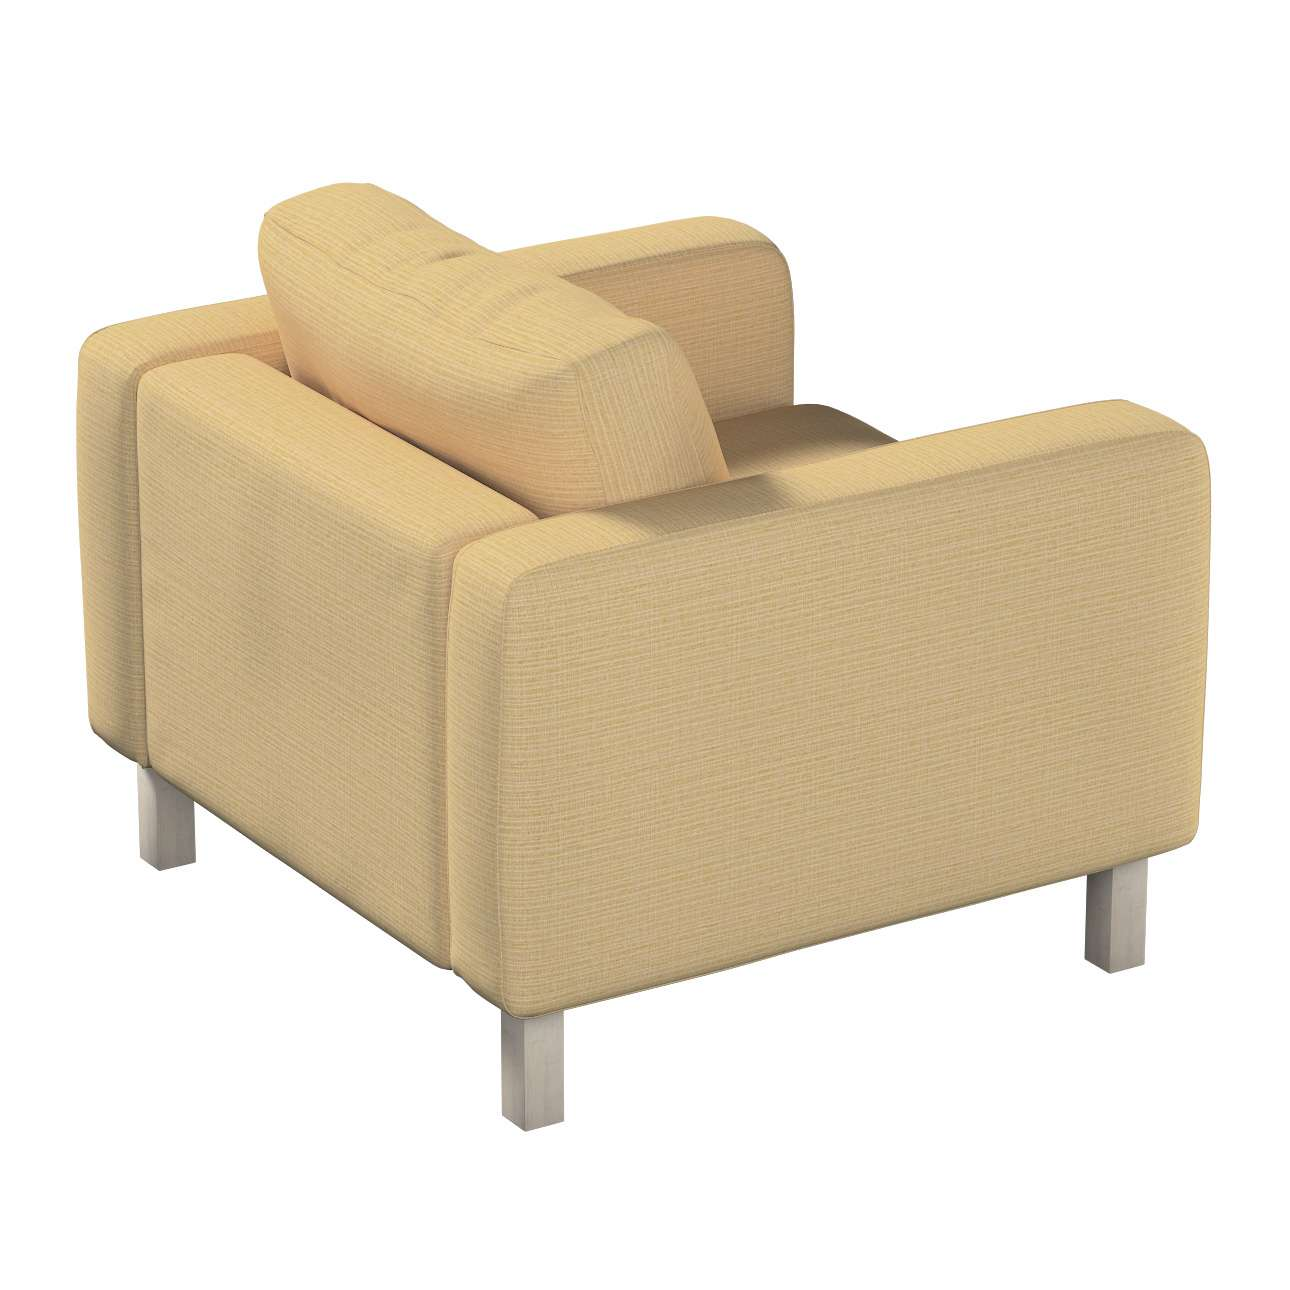 Karlstad armchair cover in collection Living, fabric: 101-14